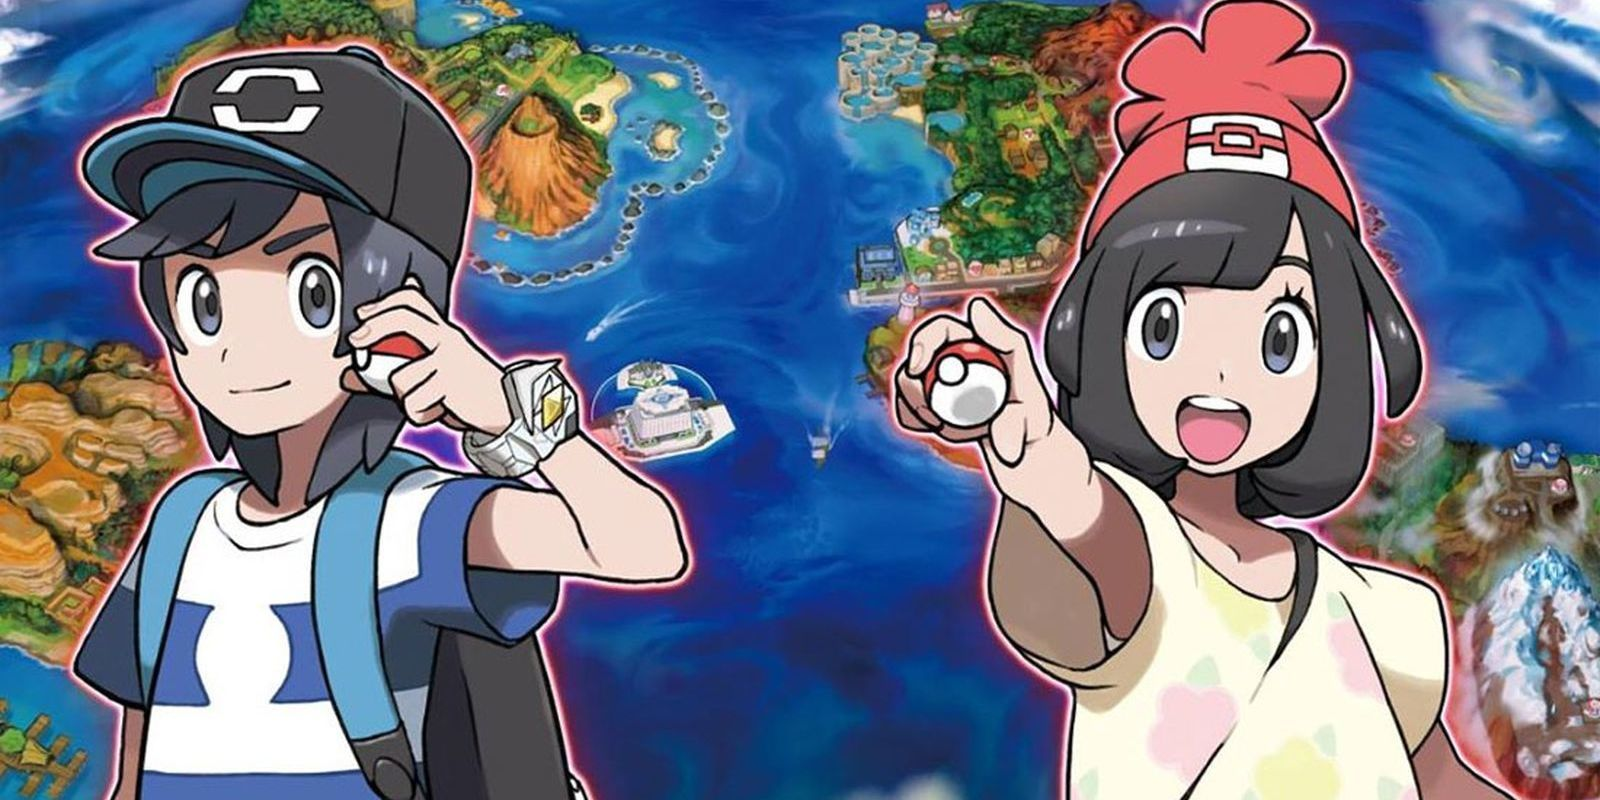 Pokemon sun and moon starters trailer legendaries release date pokemon sun and moon starters trailer legendaries release date and everything else you need to know biocorpaavc Images